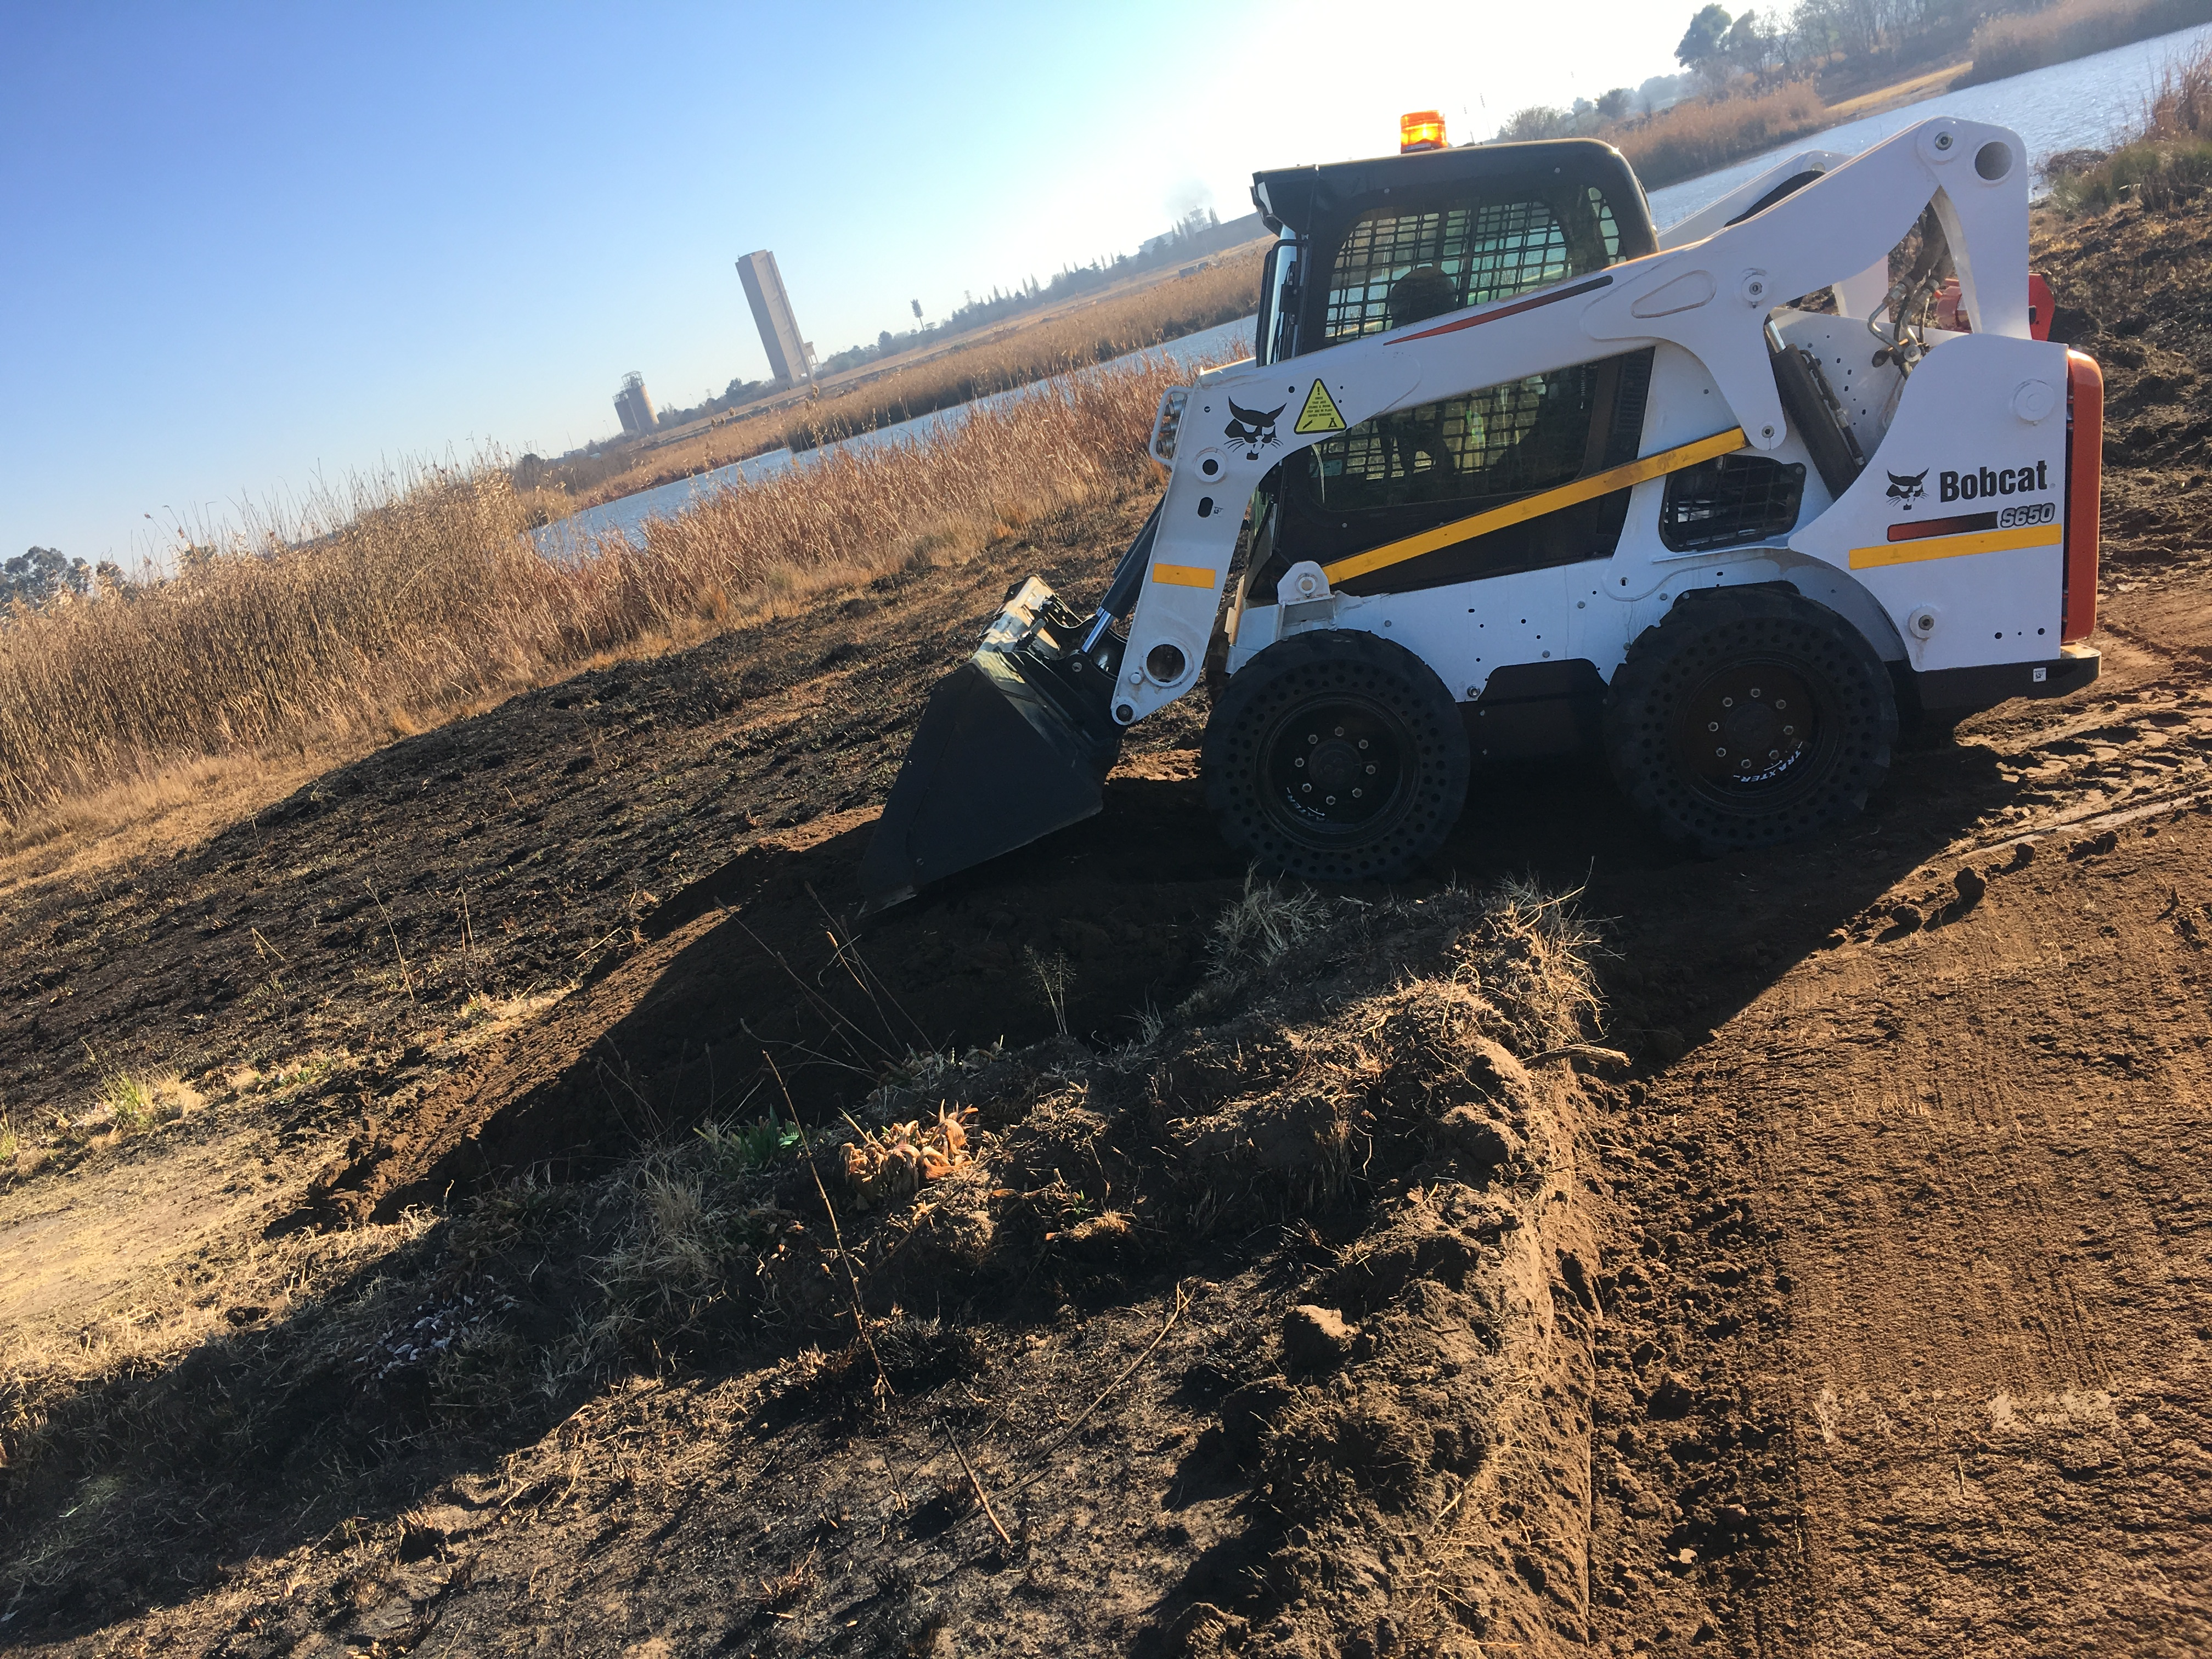 Bobcat S650 helps make Ekurhuleni community cycle track a